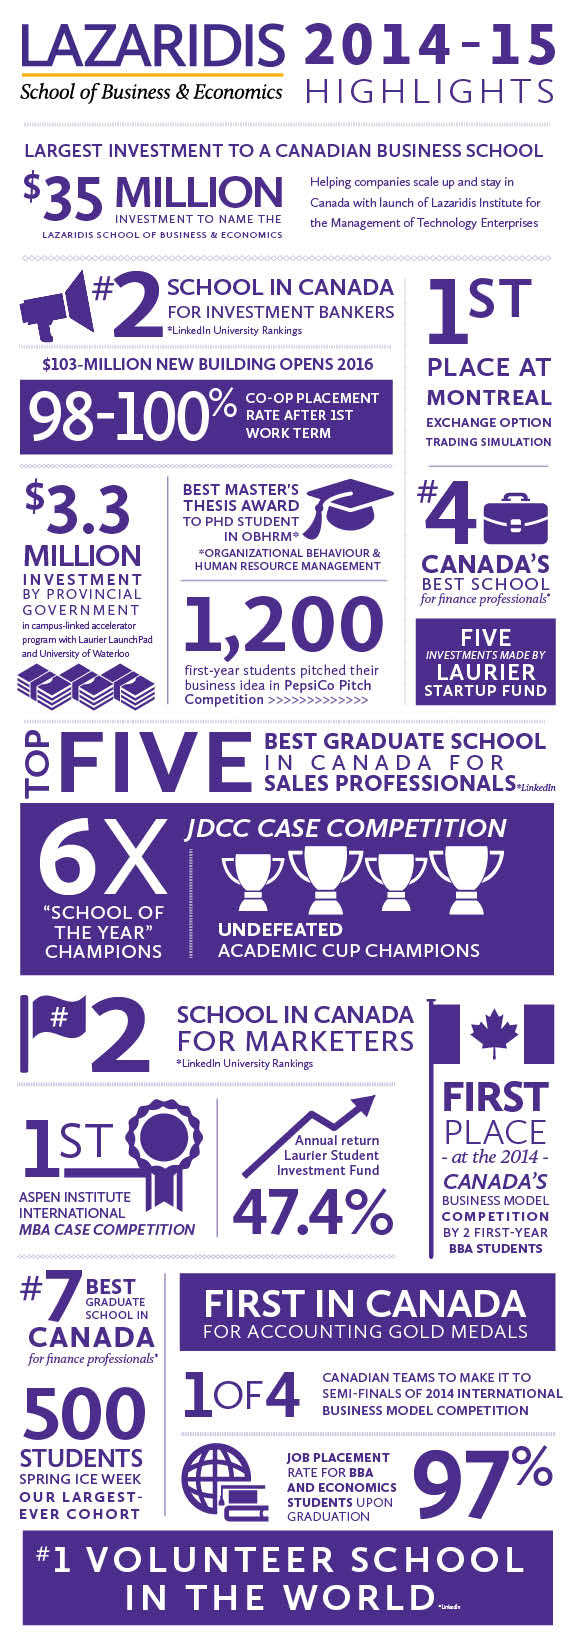 infographic of Lazaridis School facts